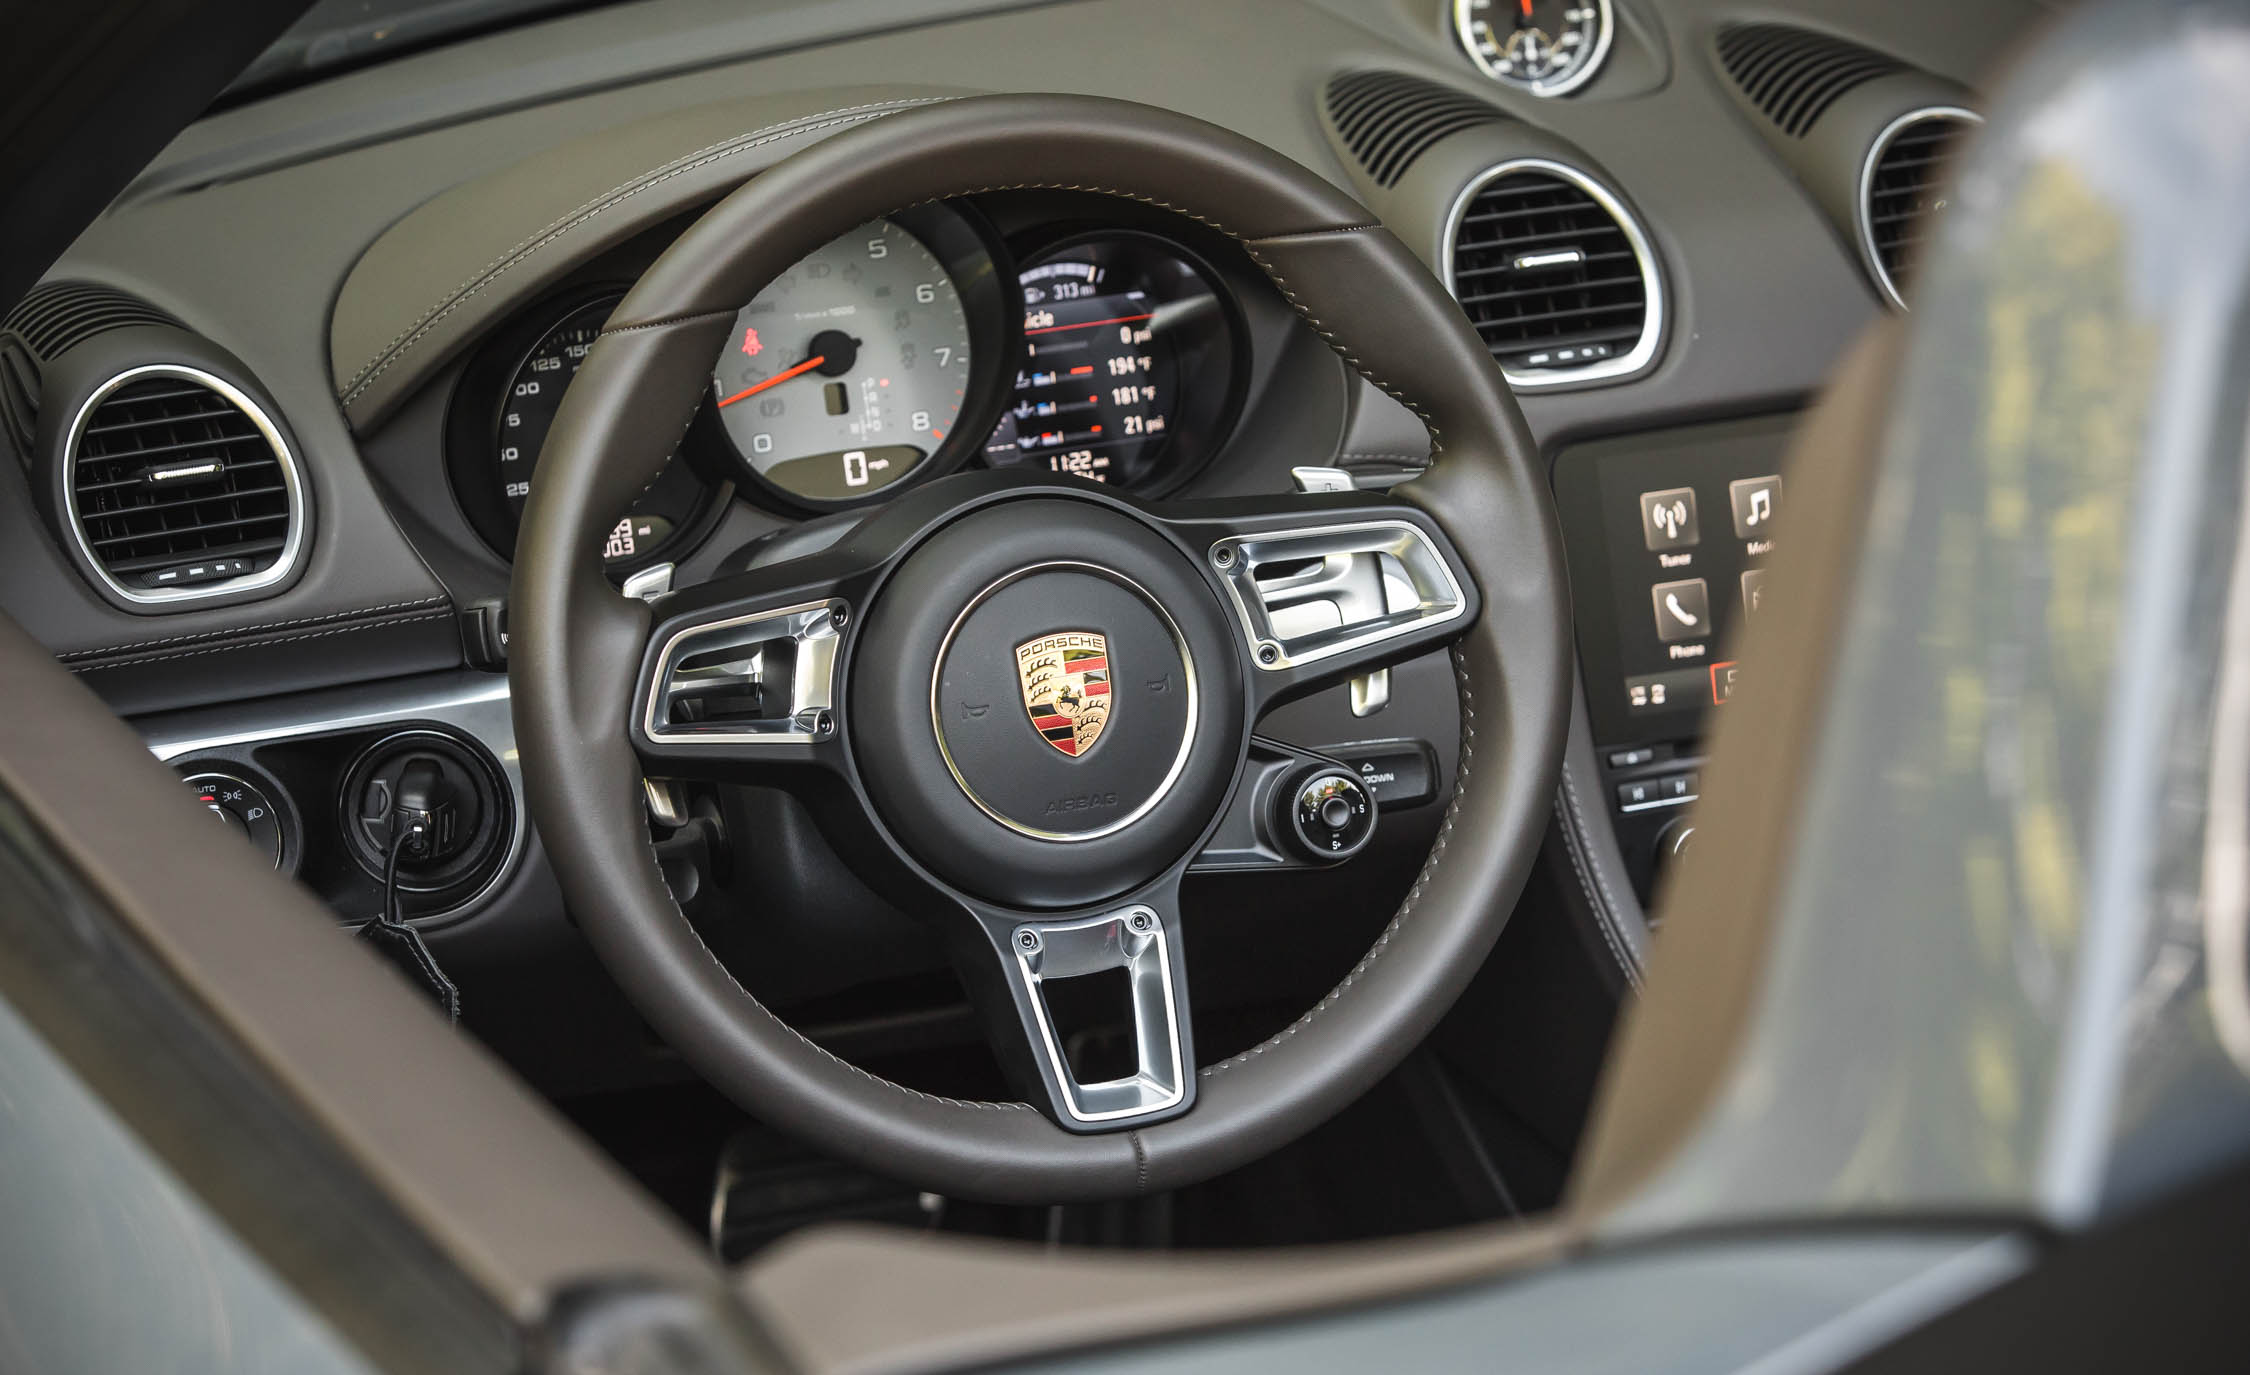 2017 Porsche 718 Boxster S Interior View Steering Wheel (View 36 of 71)